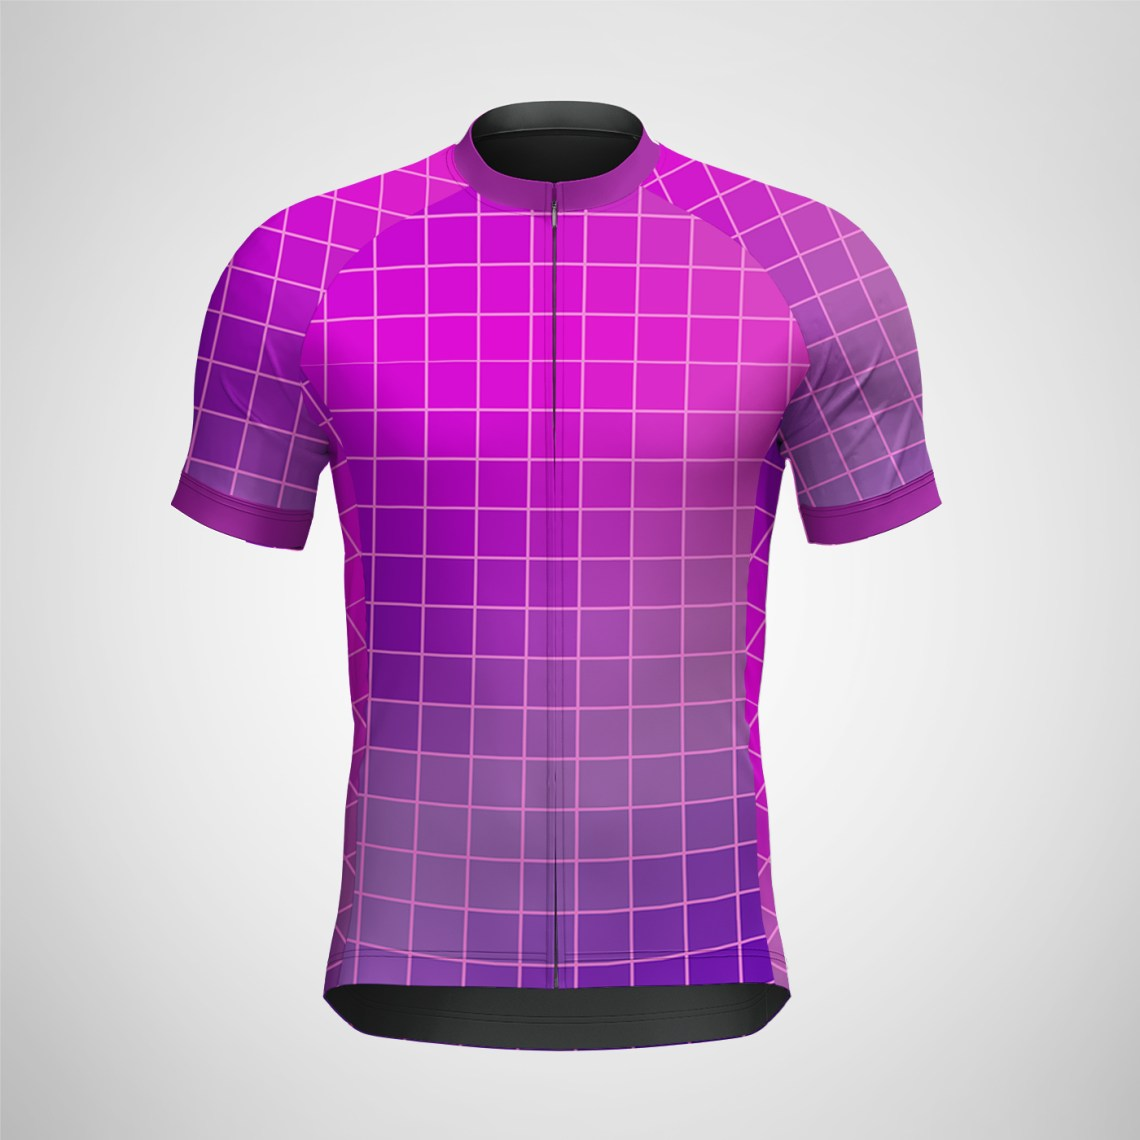 Download Men's Cycling Jersey 3D PSD Mockup Generator | Bike Jersey ...